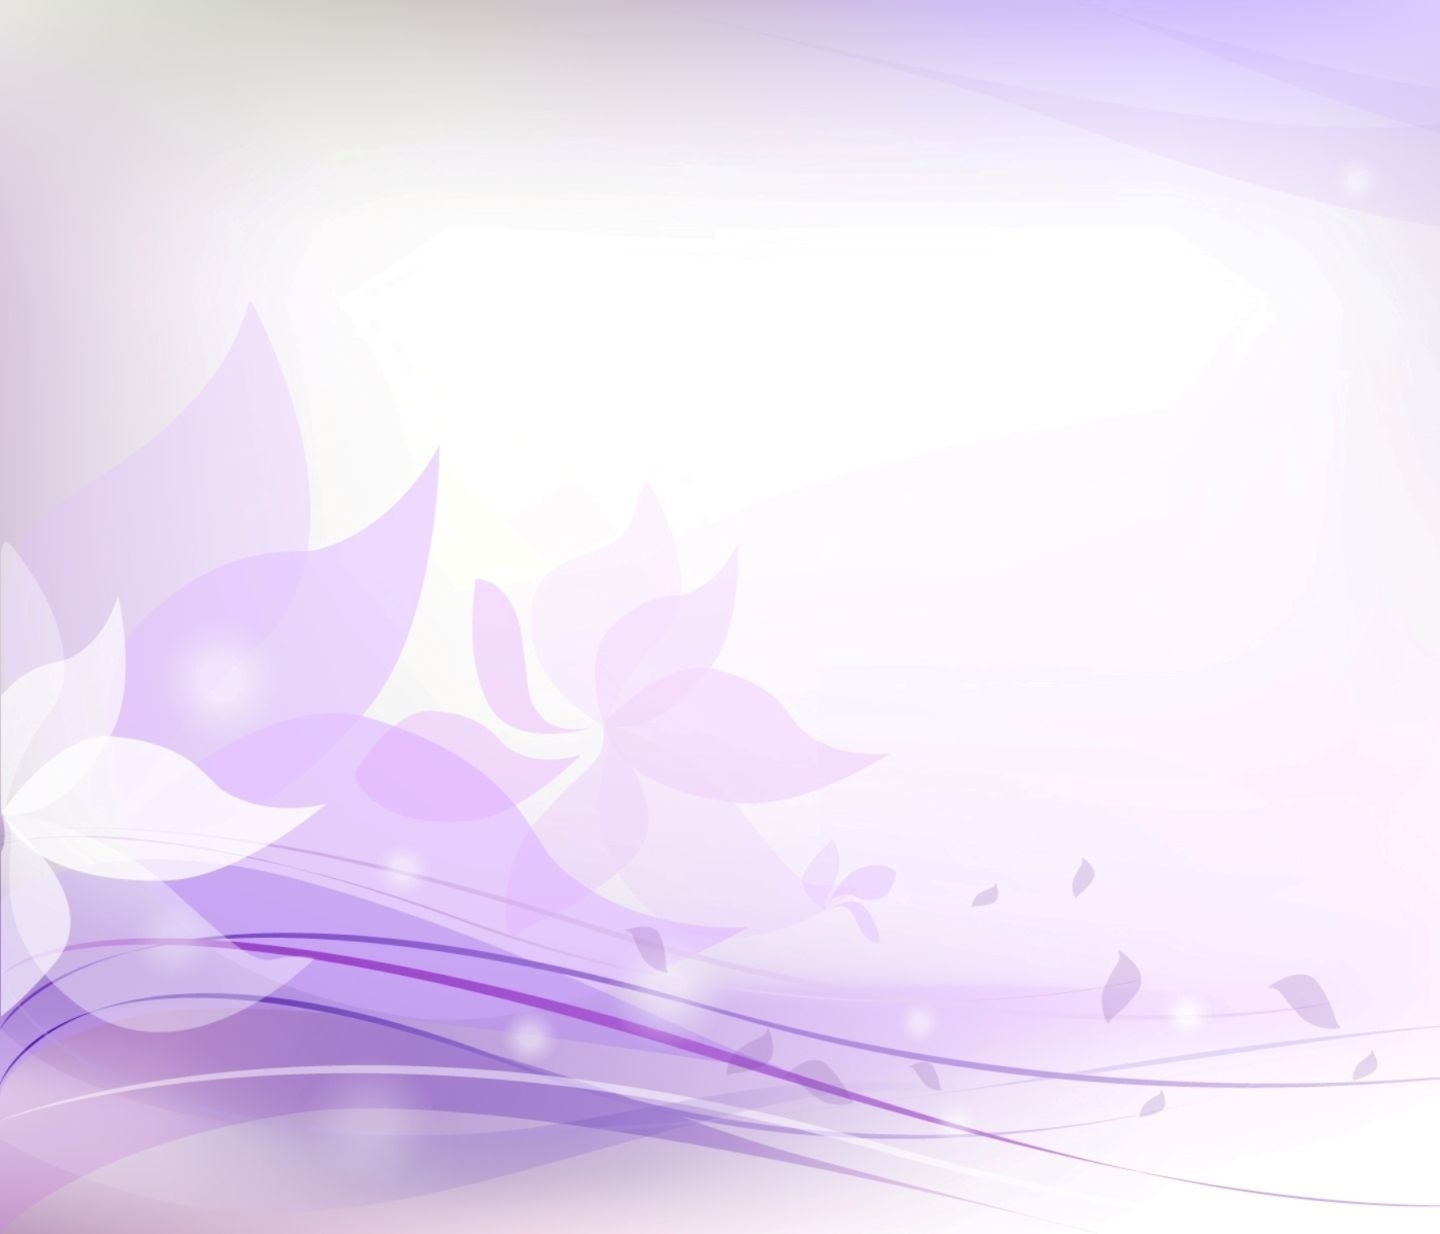 light purple flowers background images 6 hd wallpapers | andi